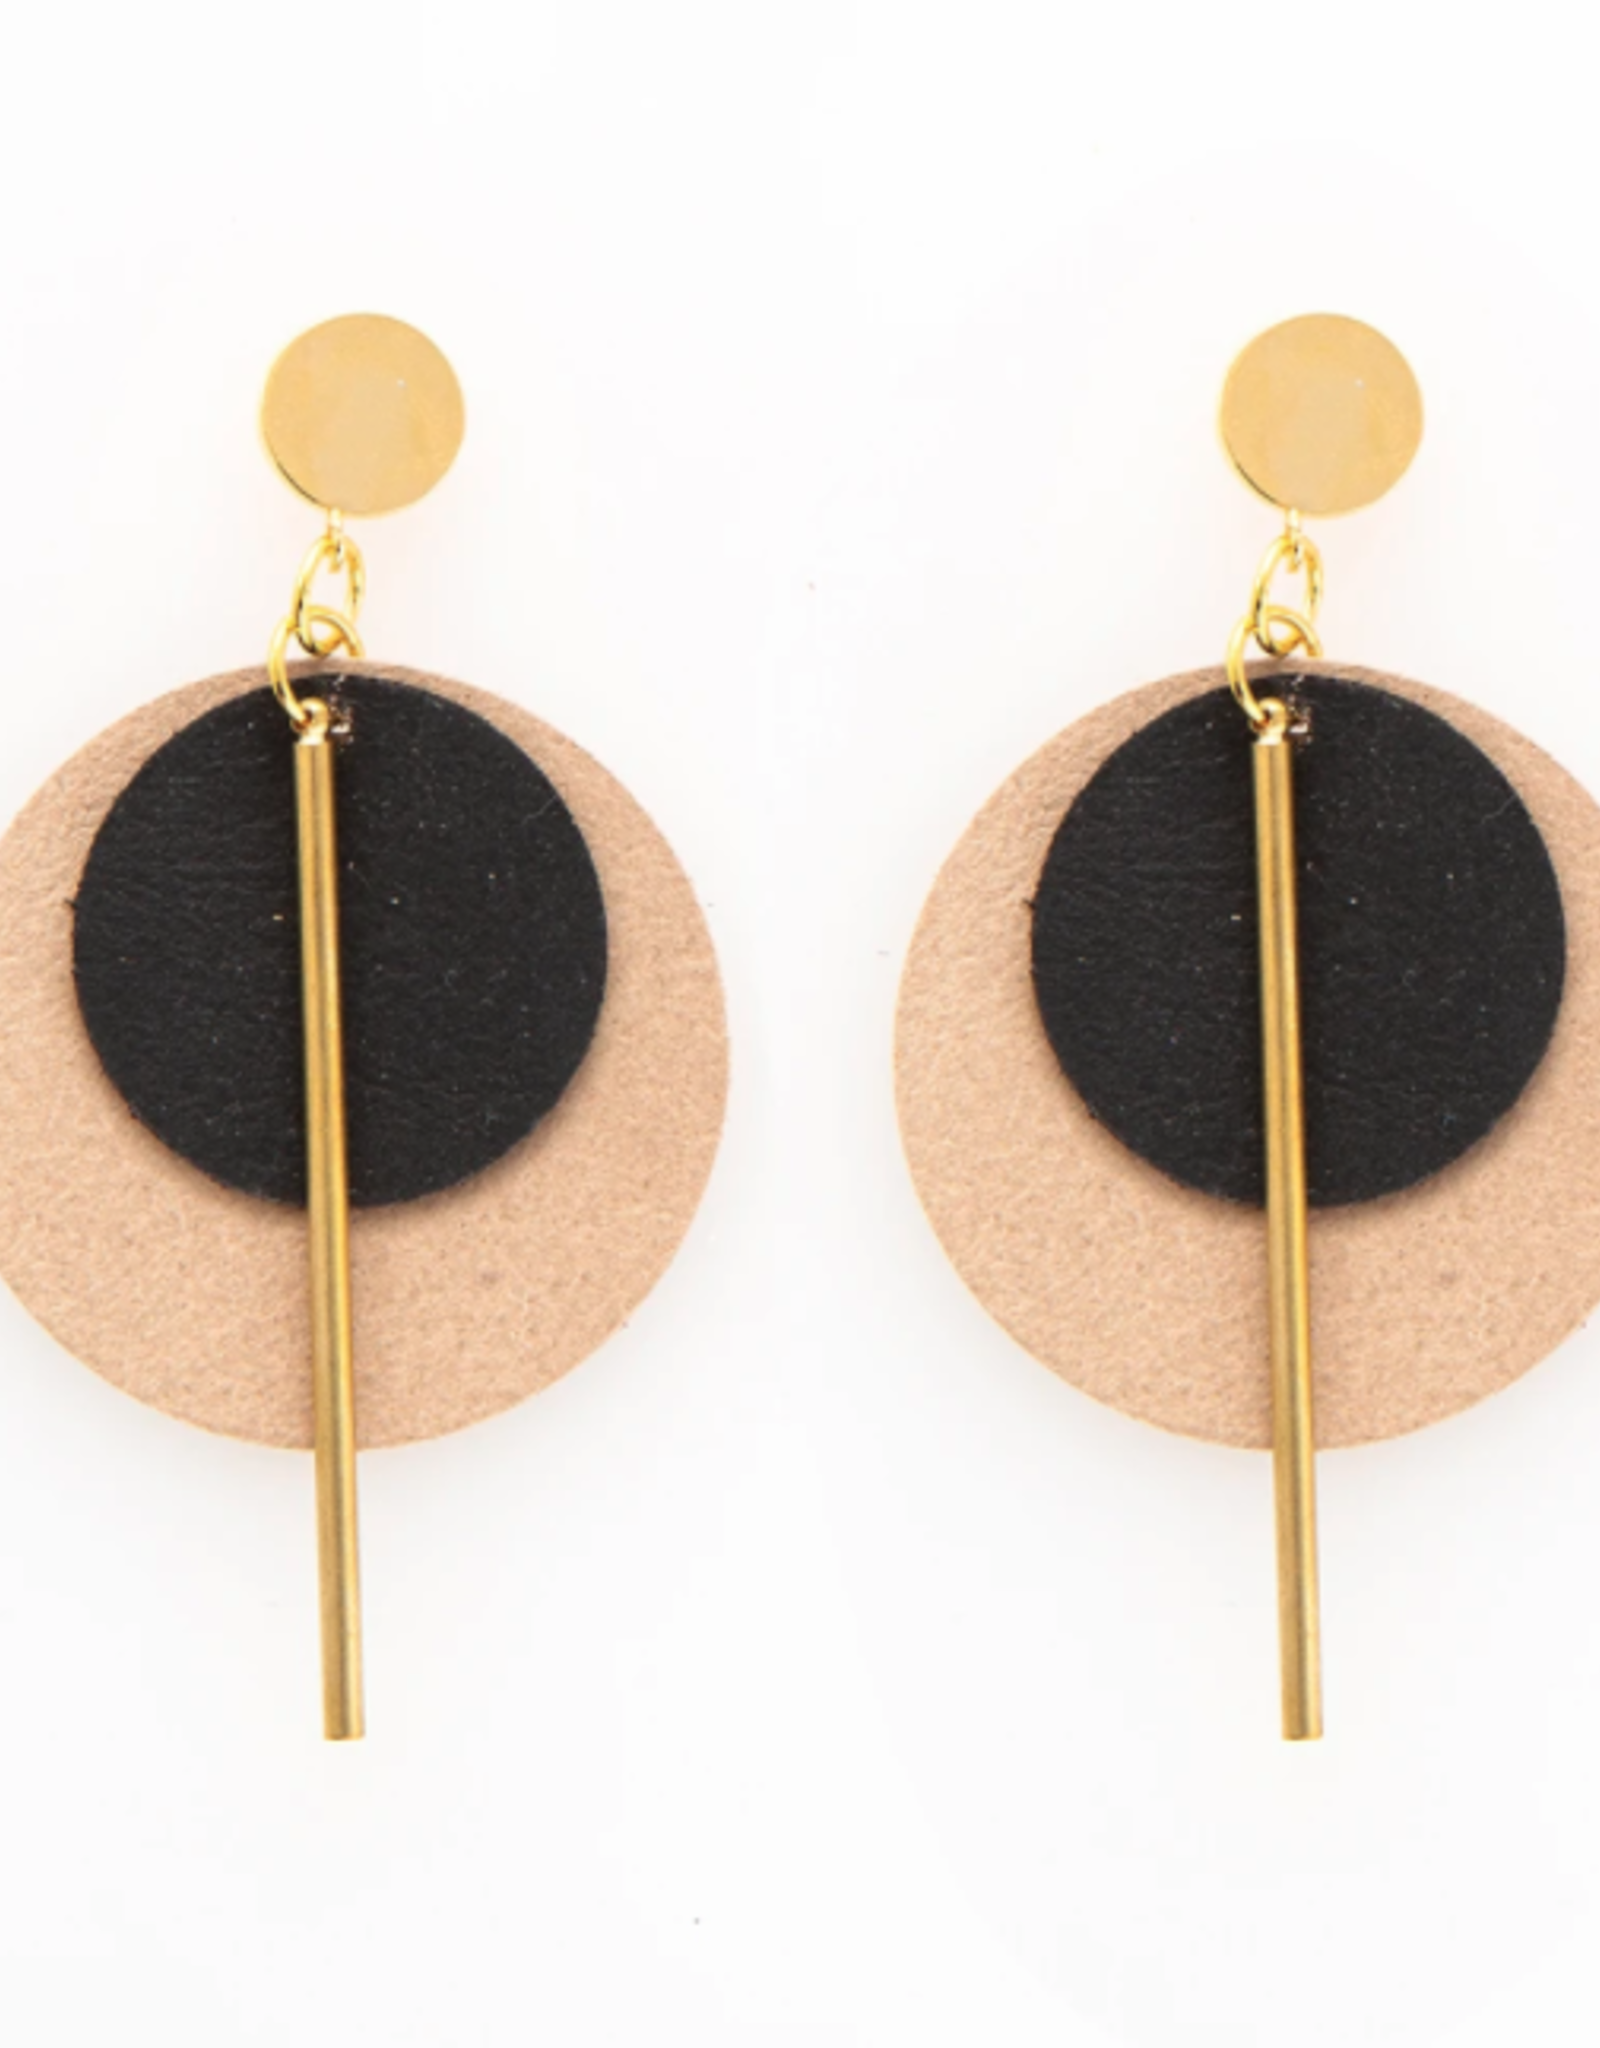 """Ink + Alloy 2.75"""" Black & Taupe Leather + Brass Earrings - INK+ALLOY"""